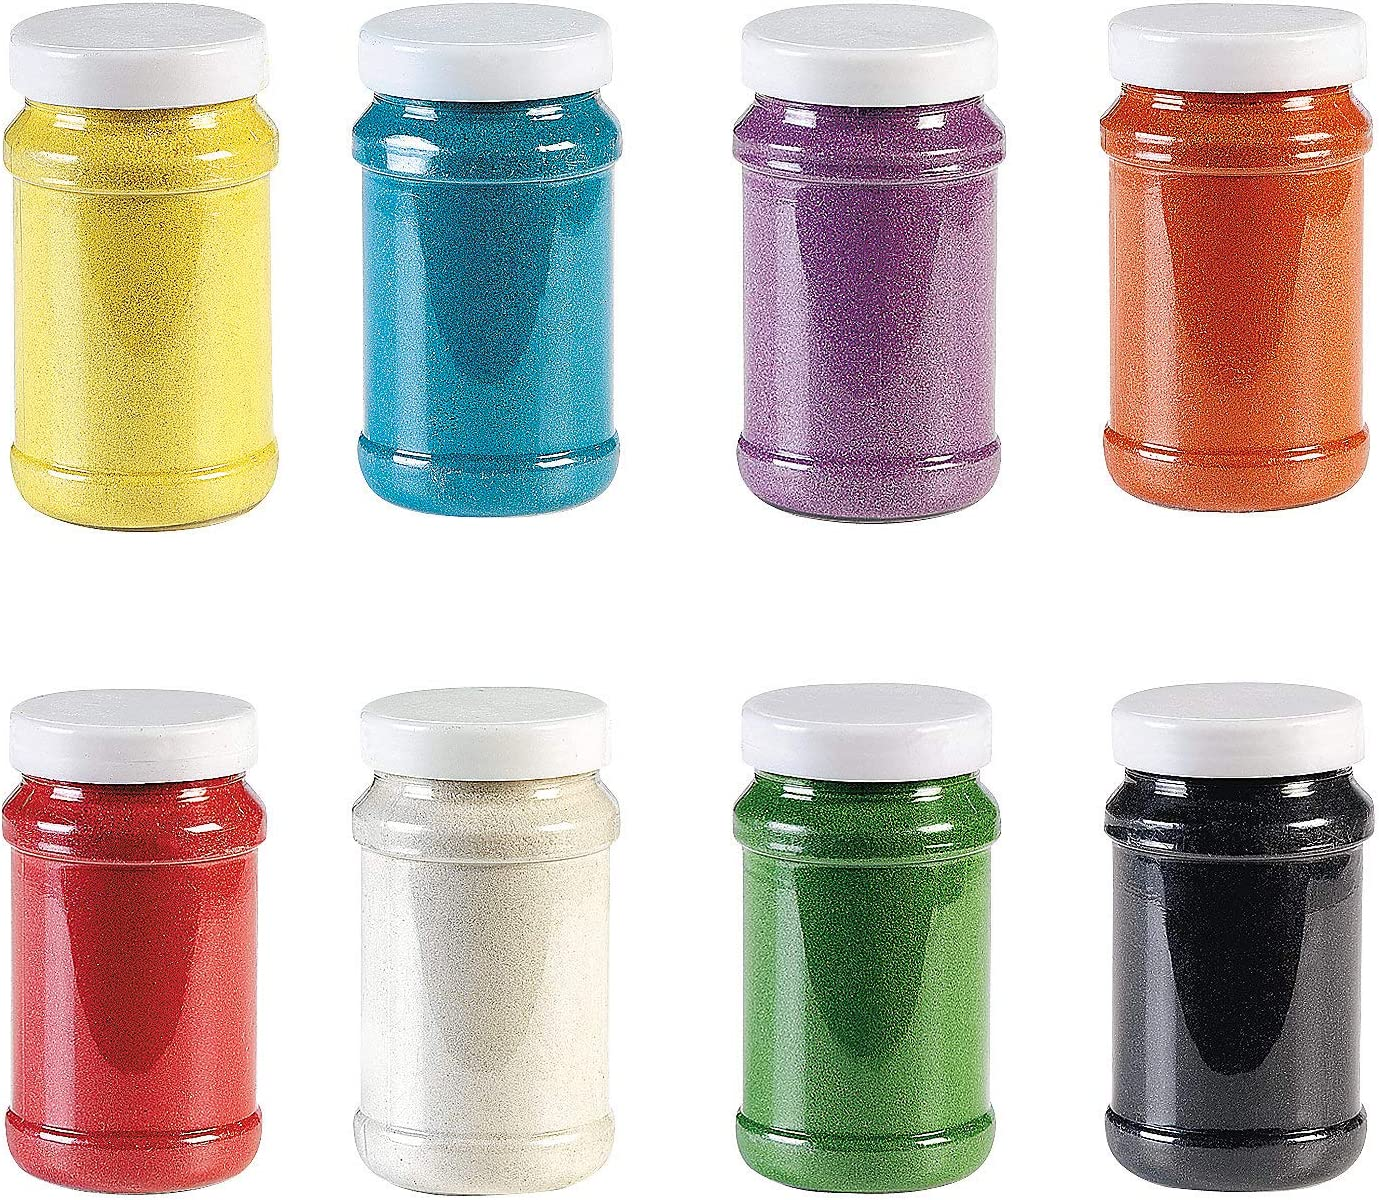 Rainbow Craft Sand Assortment (8Pc) - Crafts for Kids and Fun Home Activities